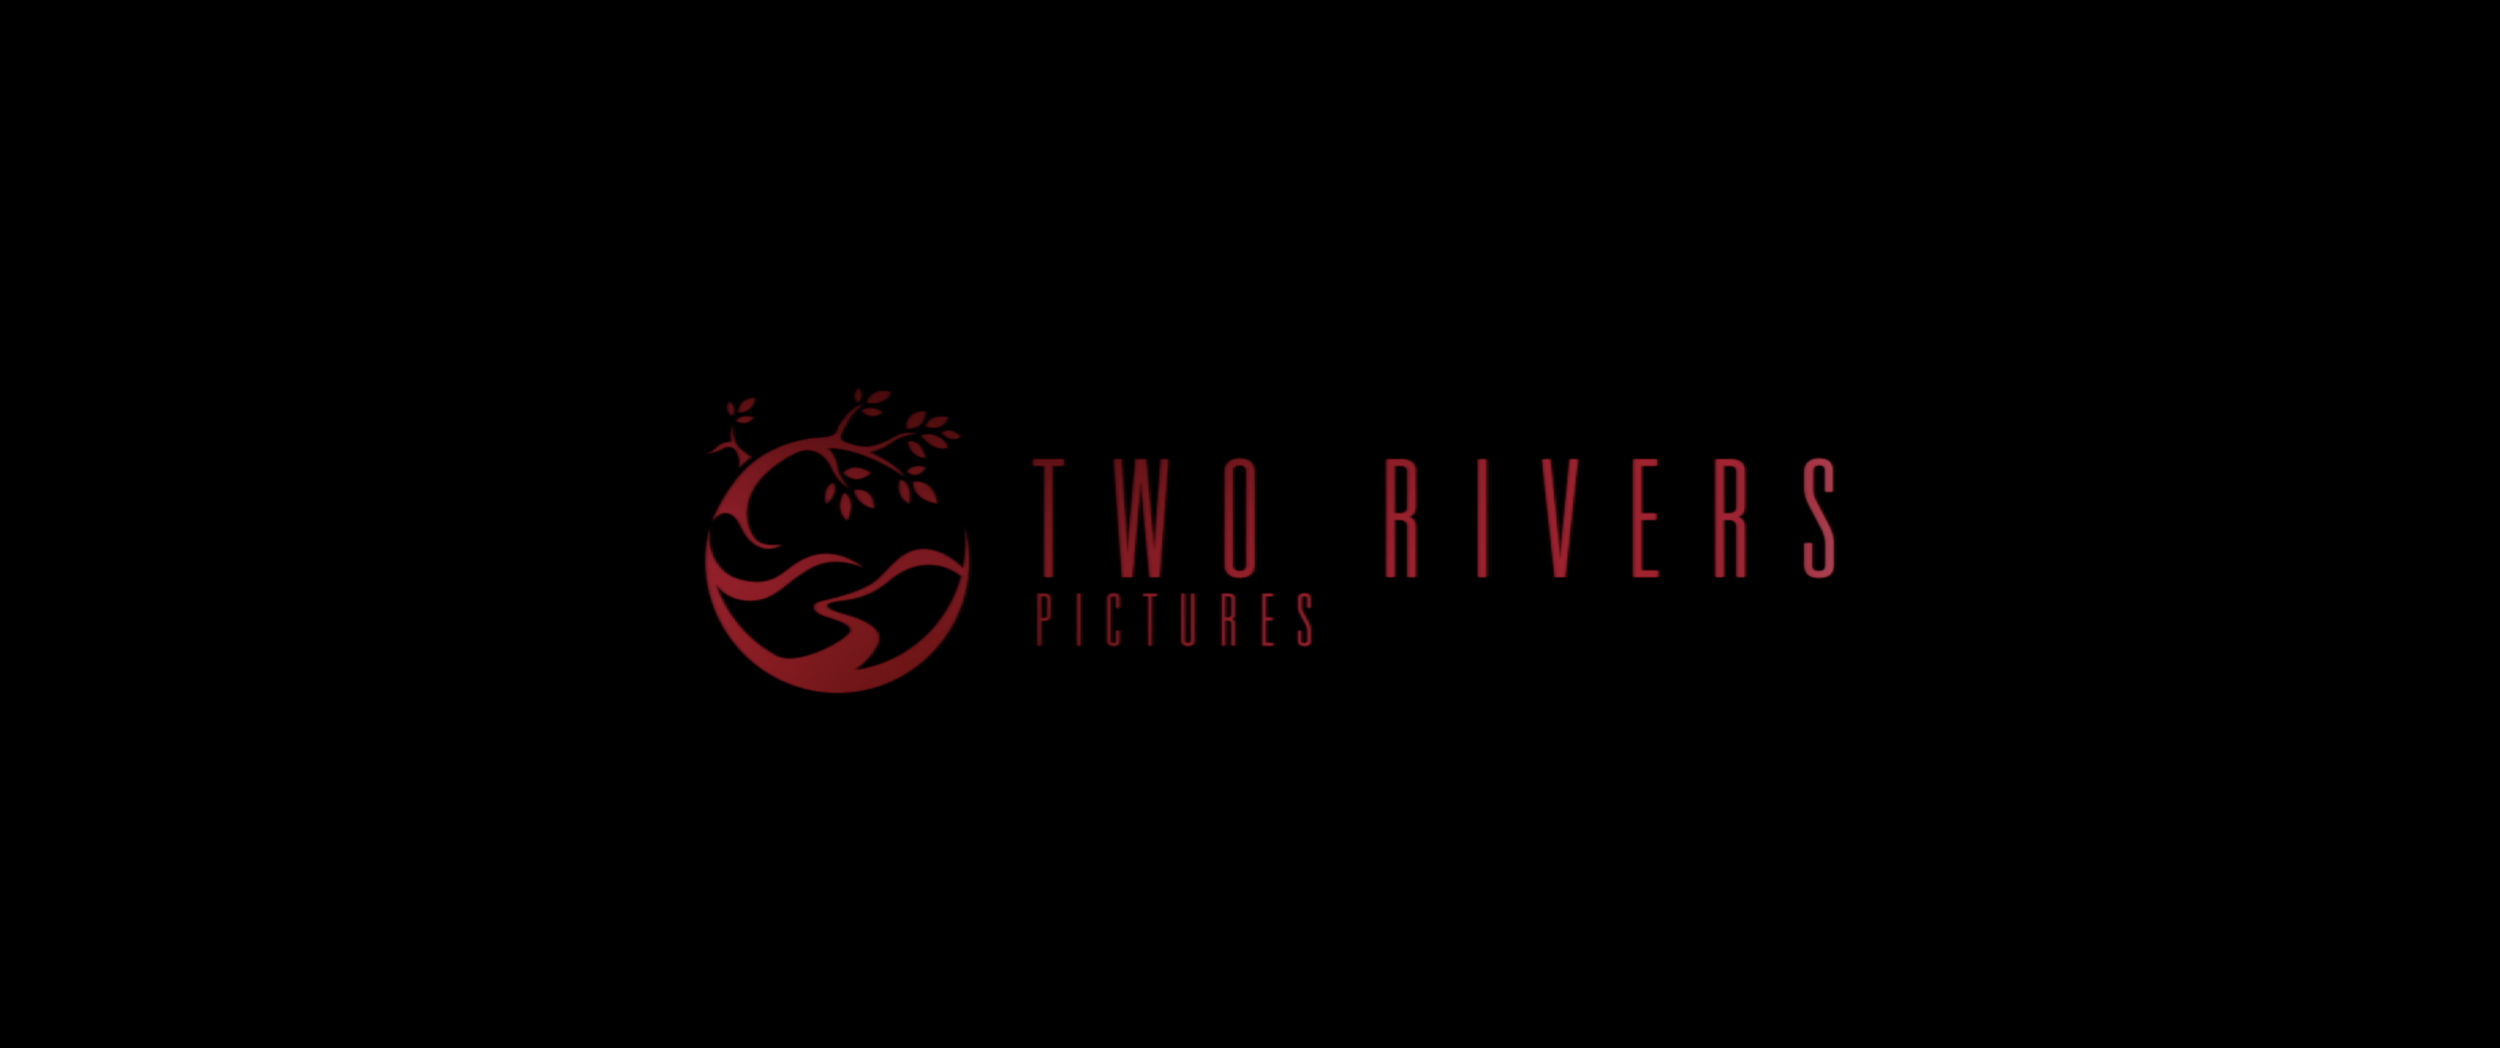 Two Rivers Pictures logo in red font, black background.png